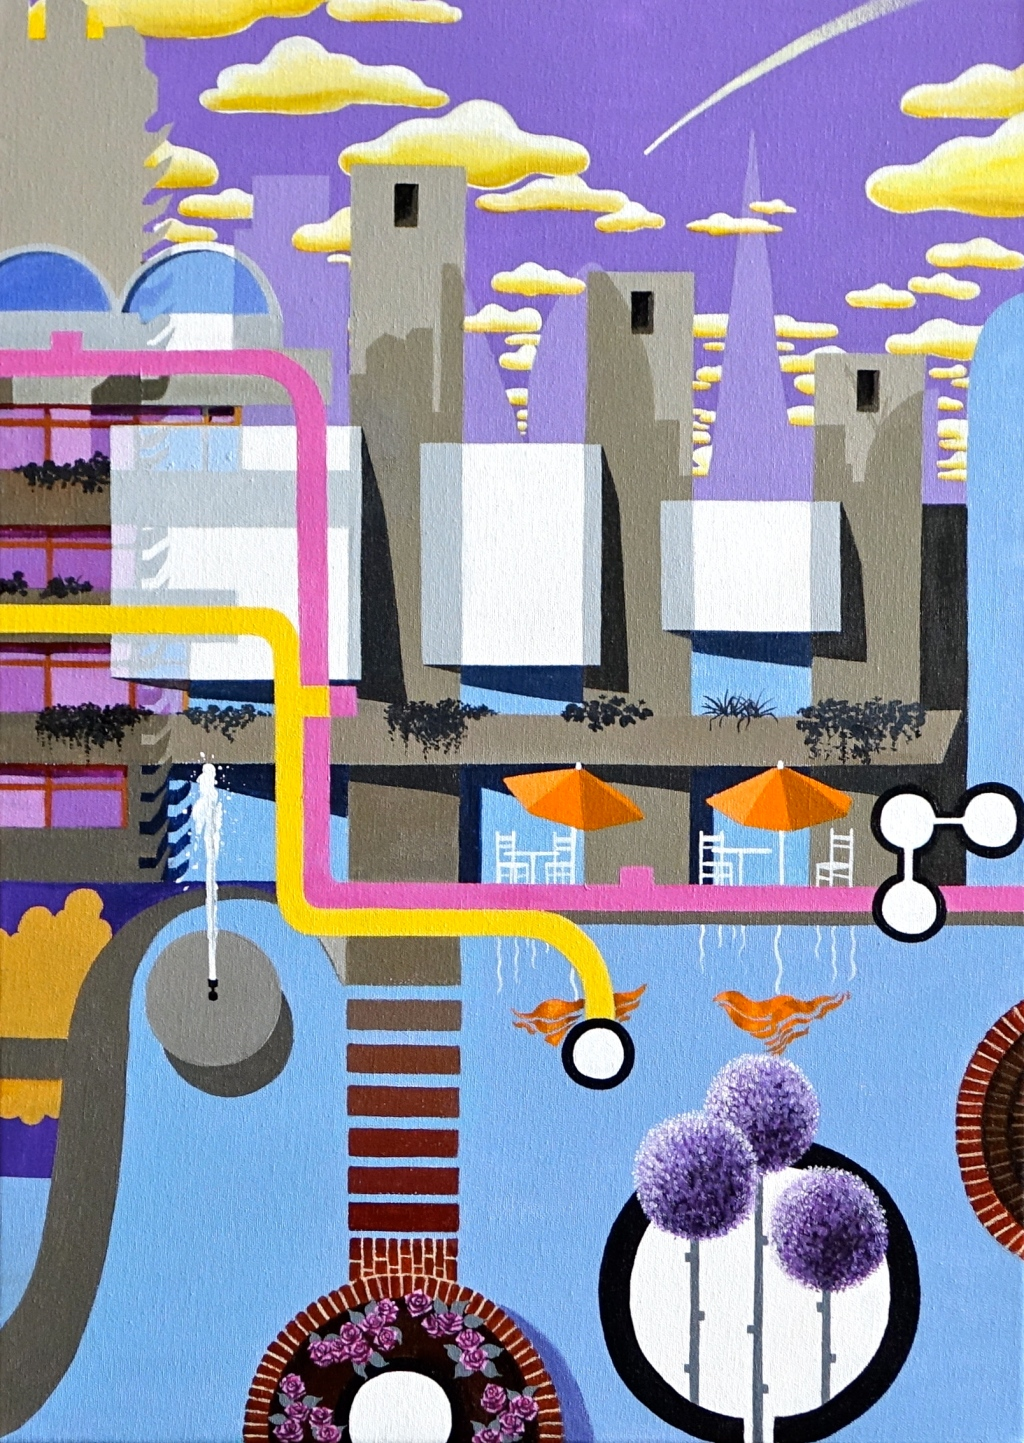 The Barbican Triptych - Canvas 2 (2013-14 © Nicholas de Lacy-Brown, acrylic on canvas)